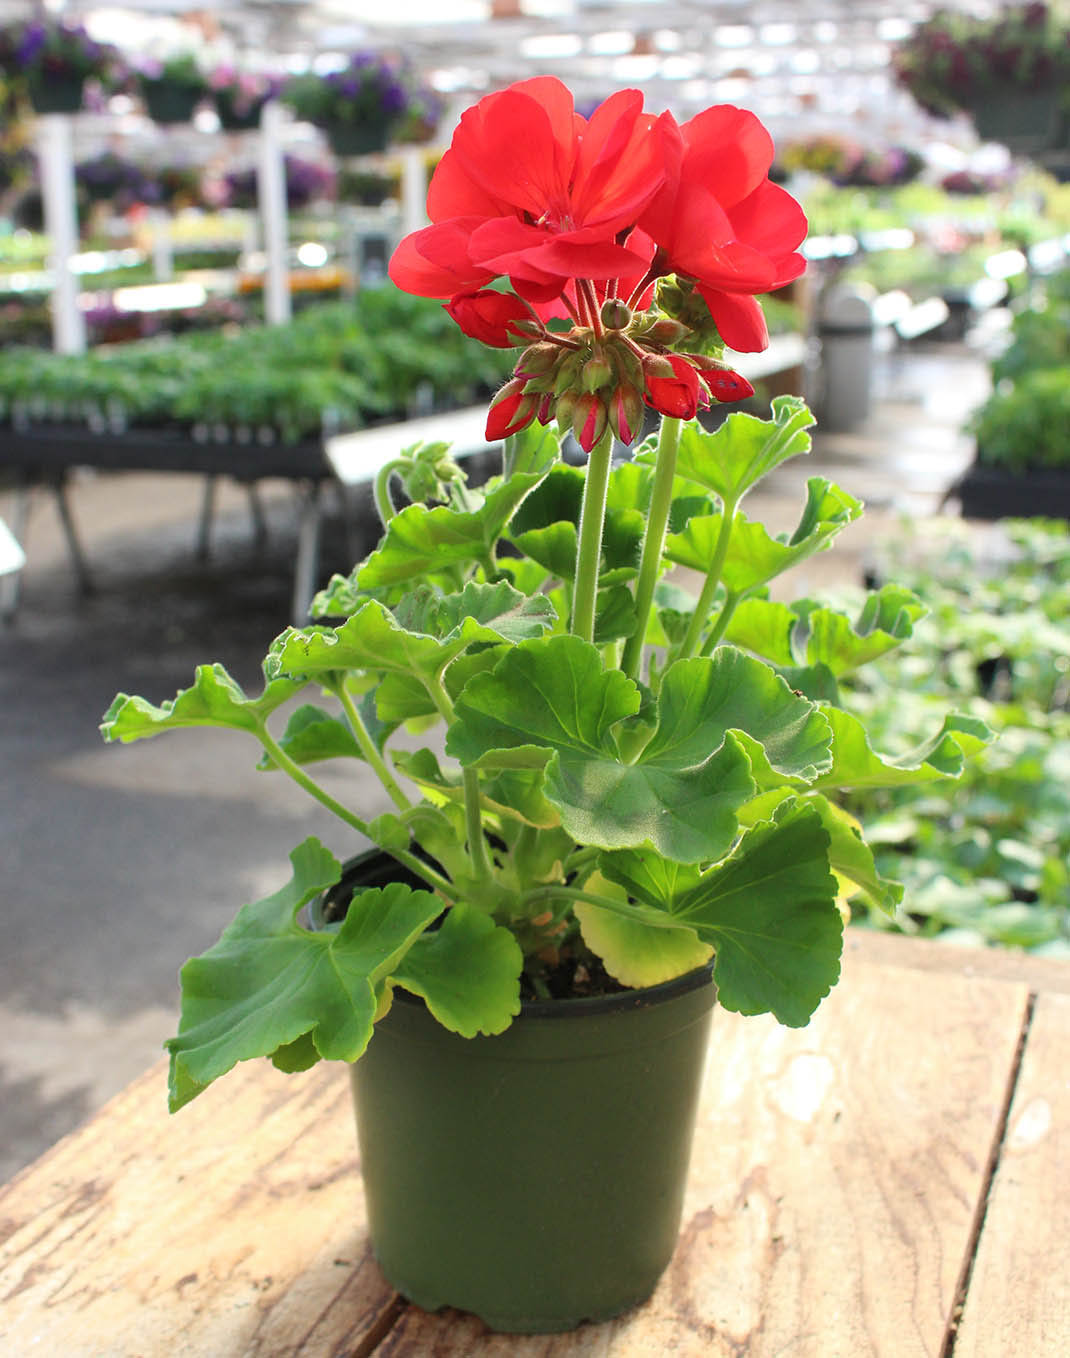 American Dark Red Zonal Geranium in the nursery blooming